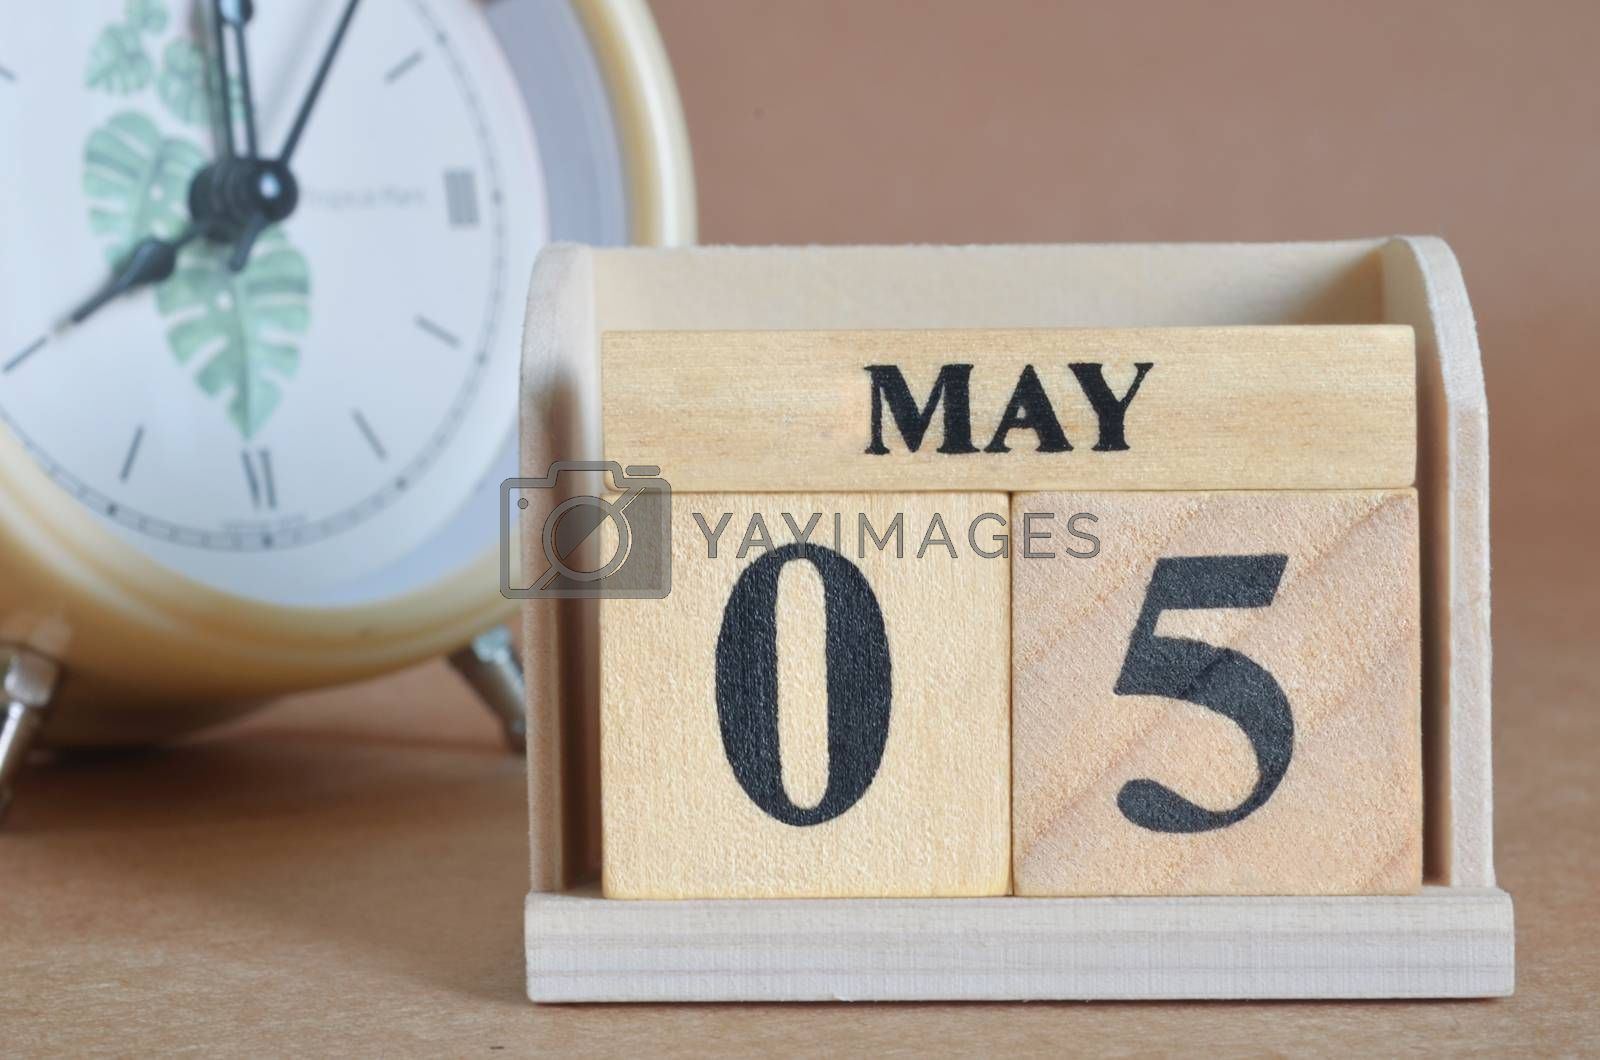 May 5 by Mrfrost